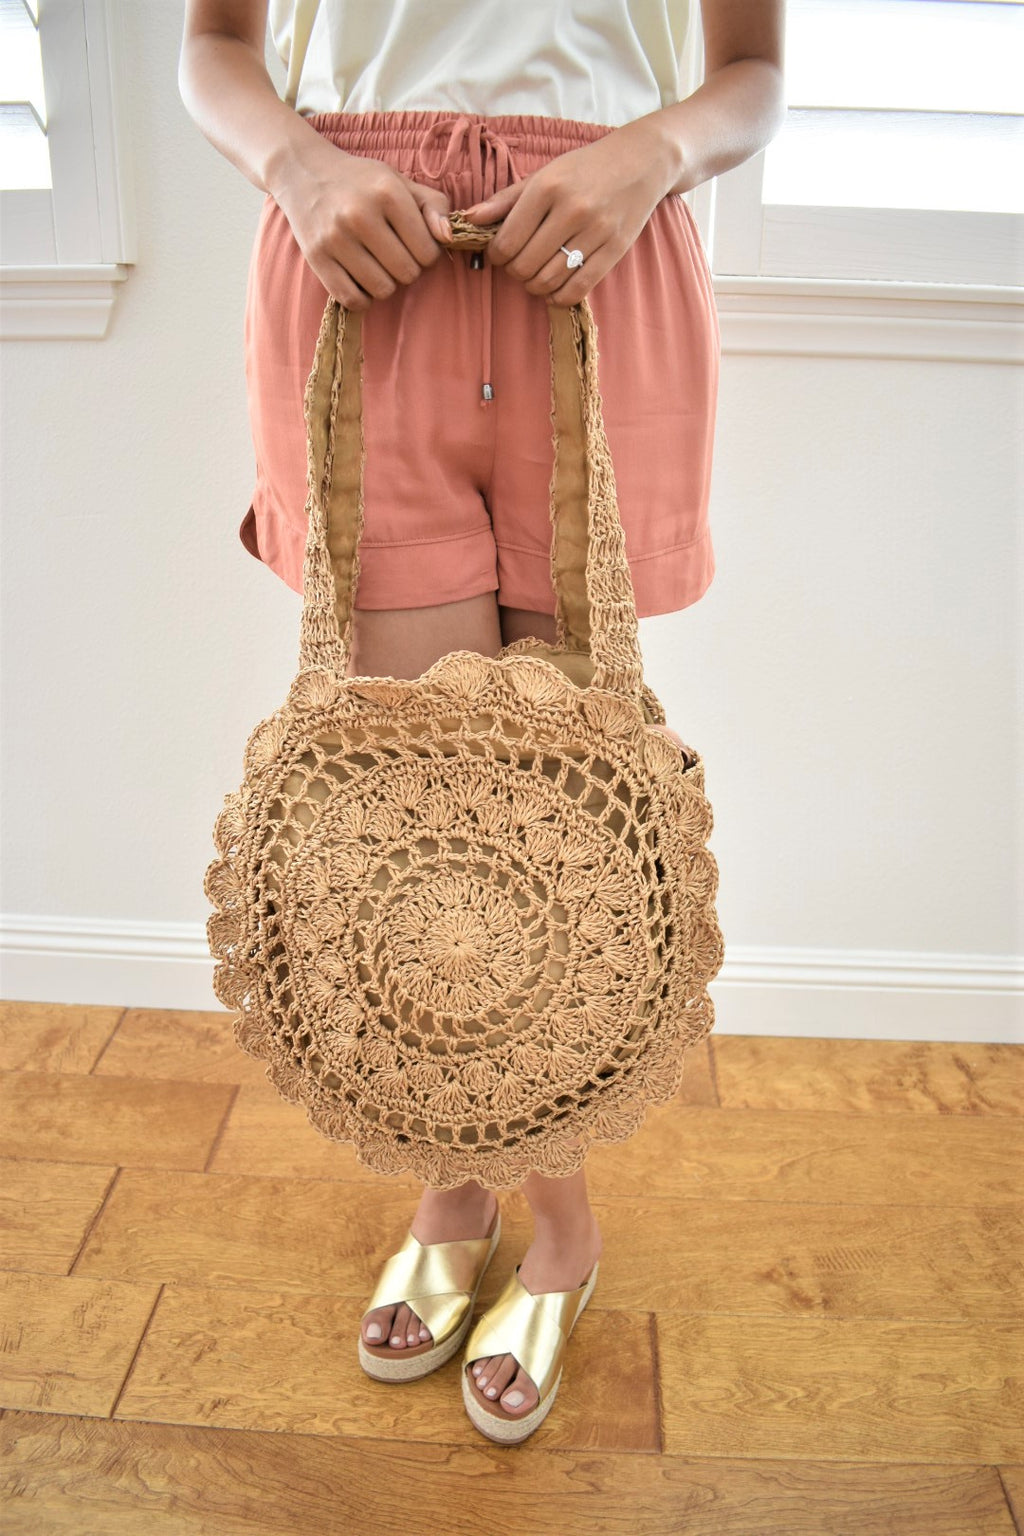 Beachy Woven Bag - Sweetly Striped